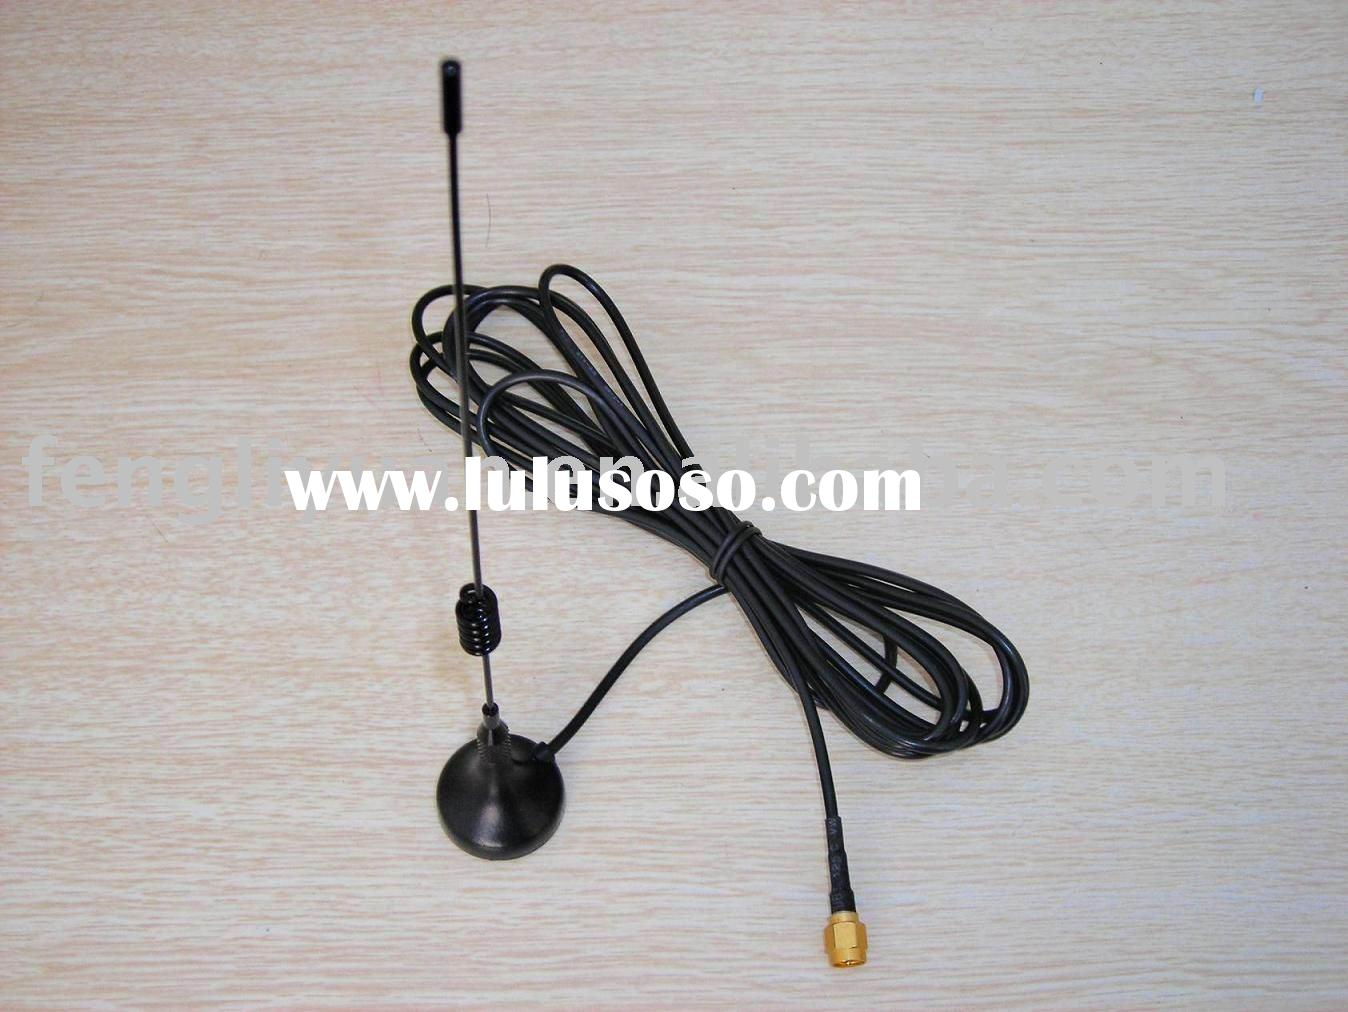 GSM mobile antenna is designed for the dual-band mobile communication system ...